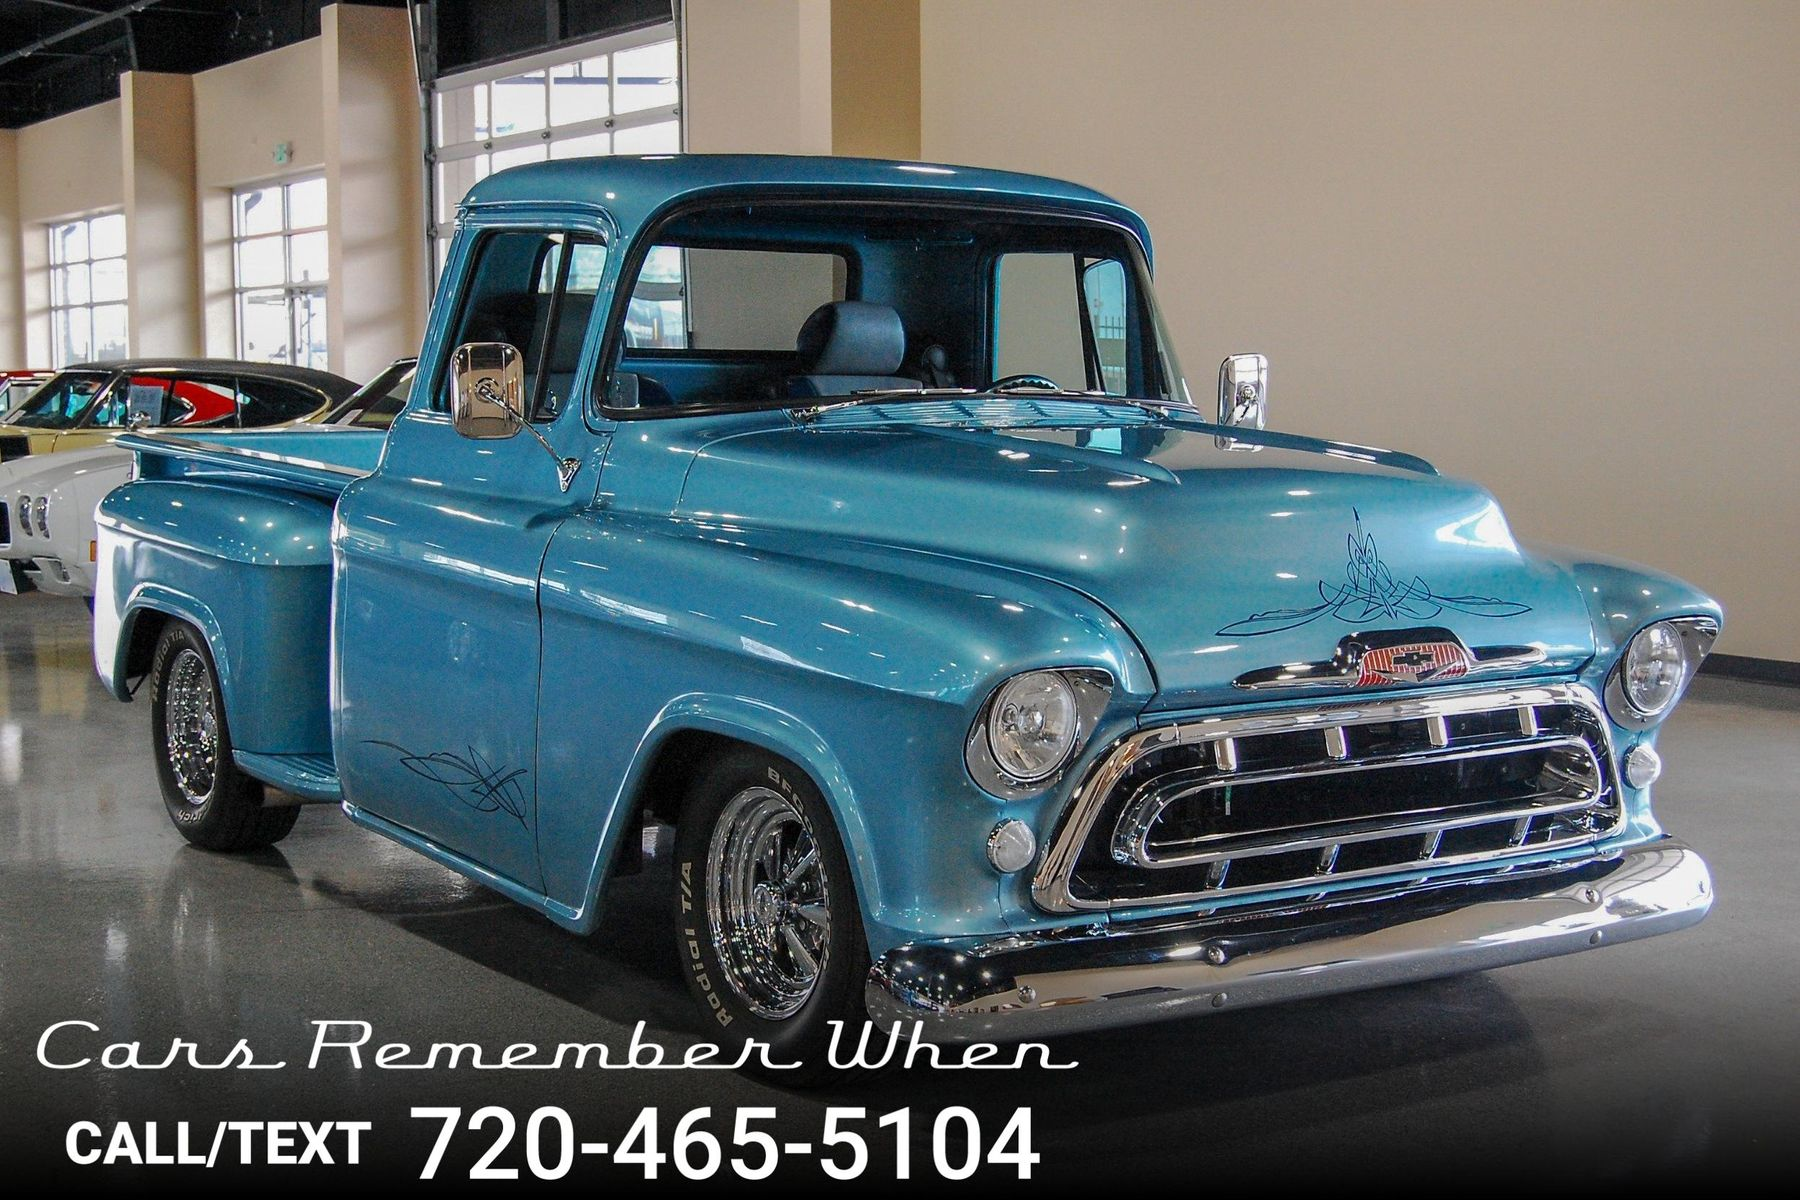 1957 Chevrolet Pickup Cars Remember When Chevy Bucket Seats